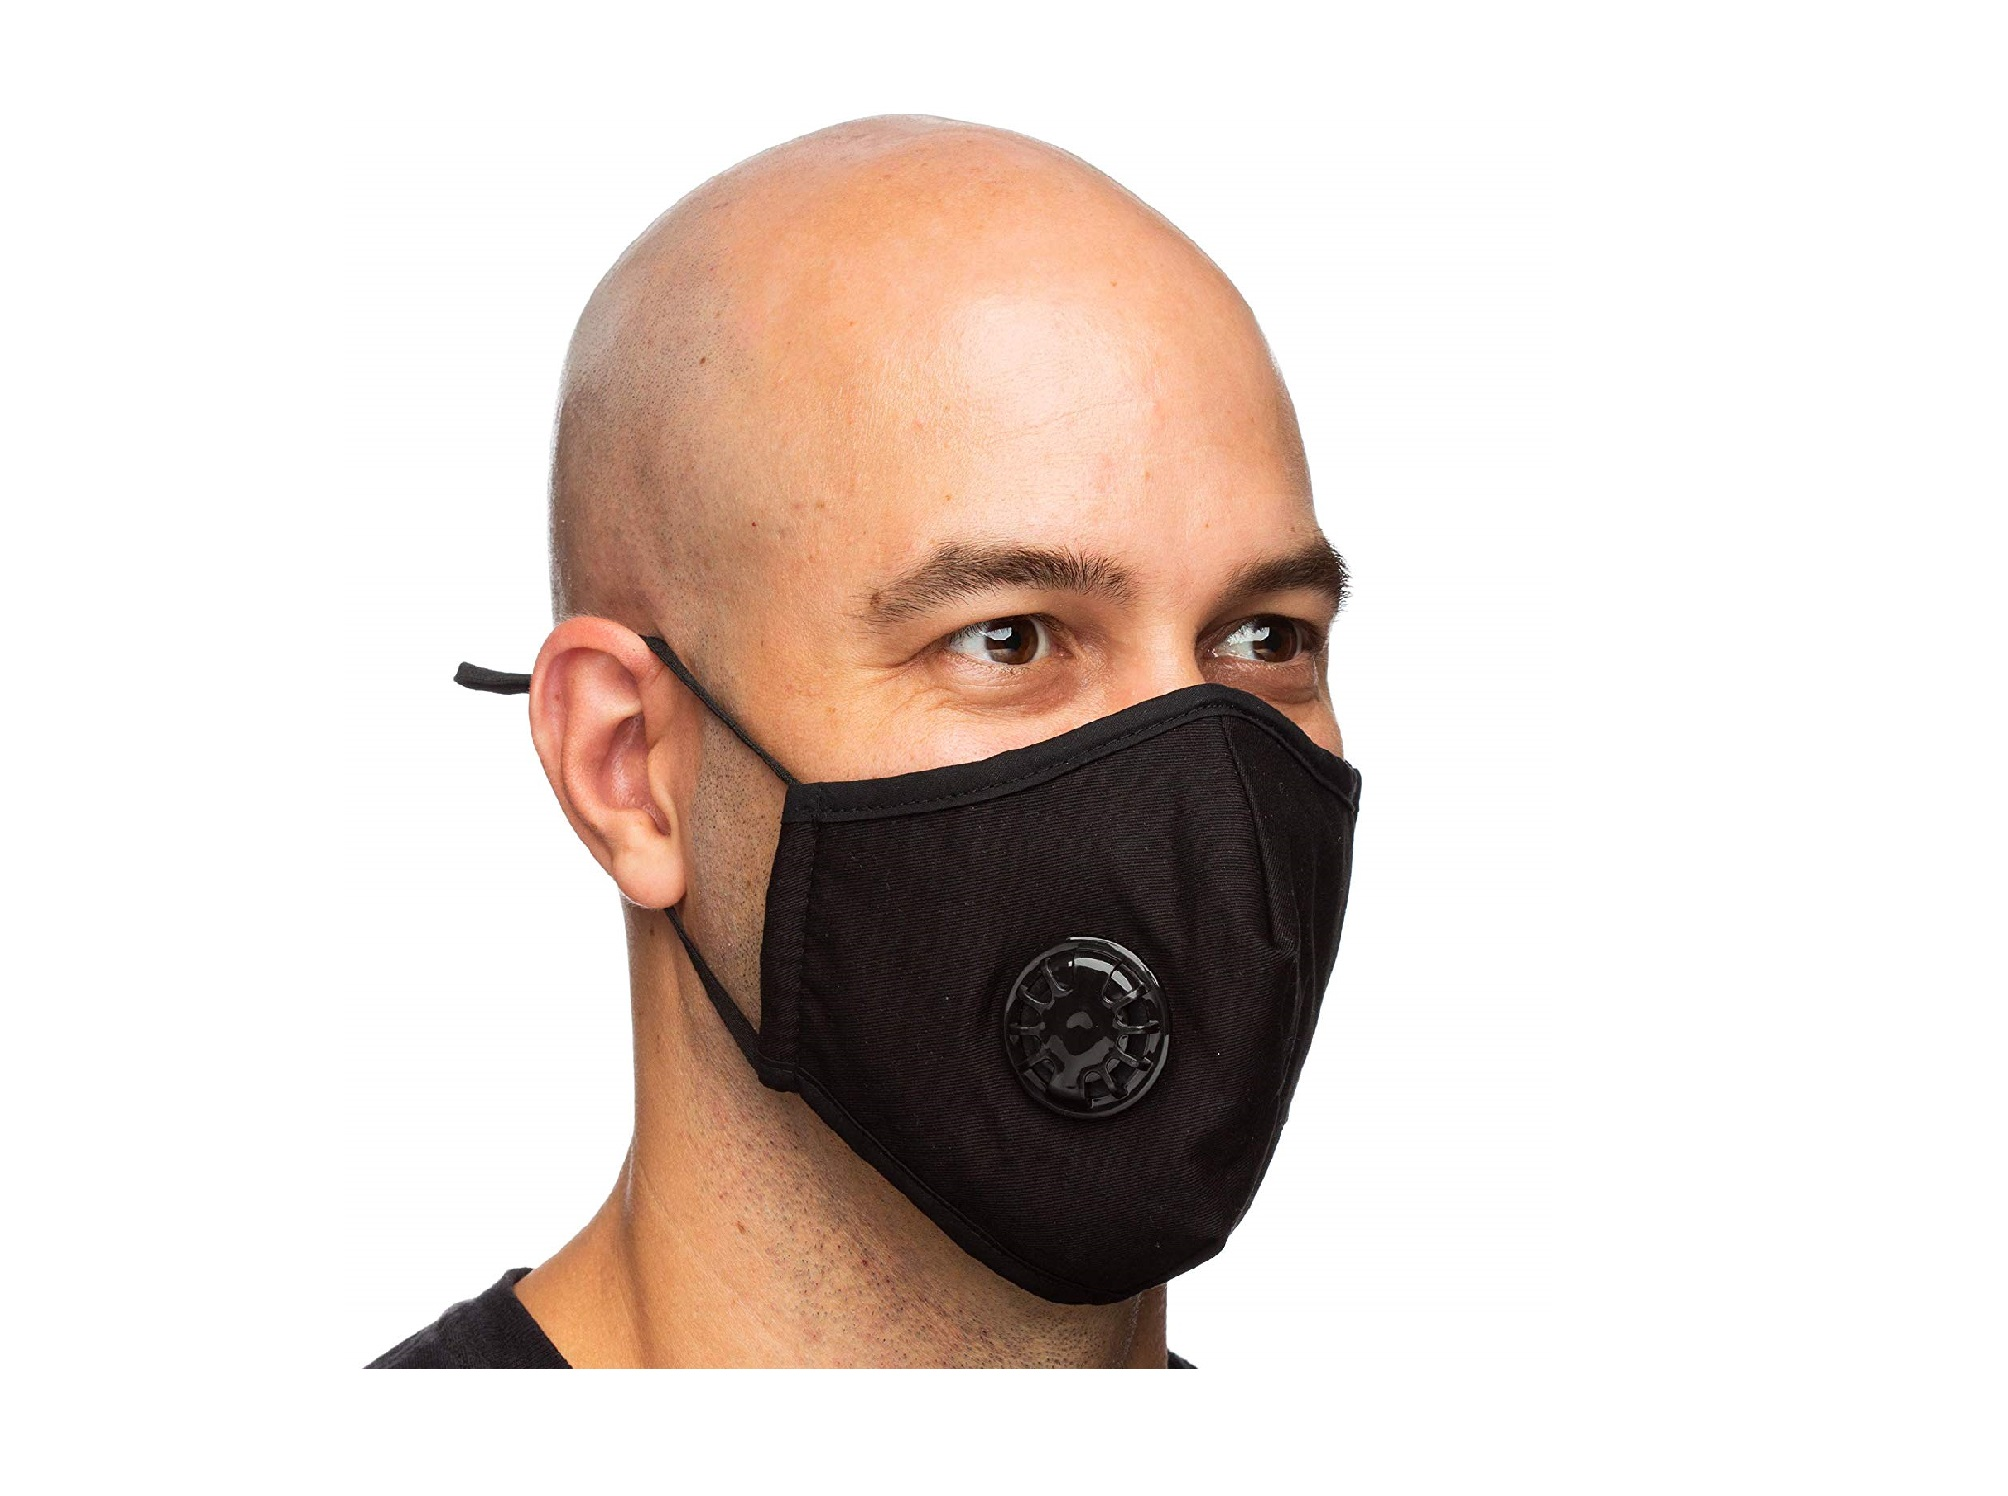 Top 5 Best Dust Masks Amazon in 2020 Reviews